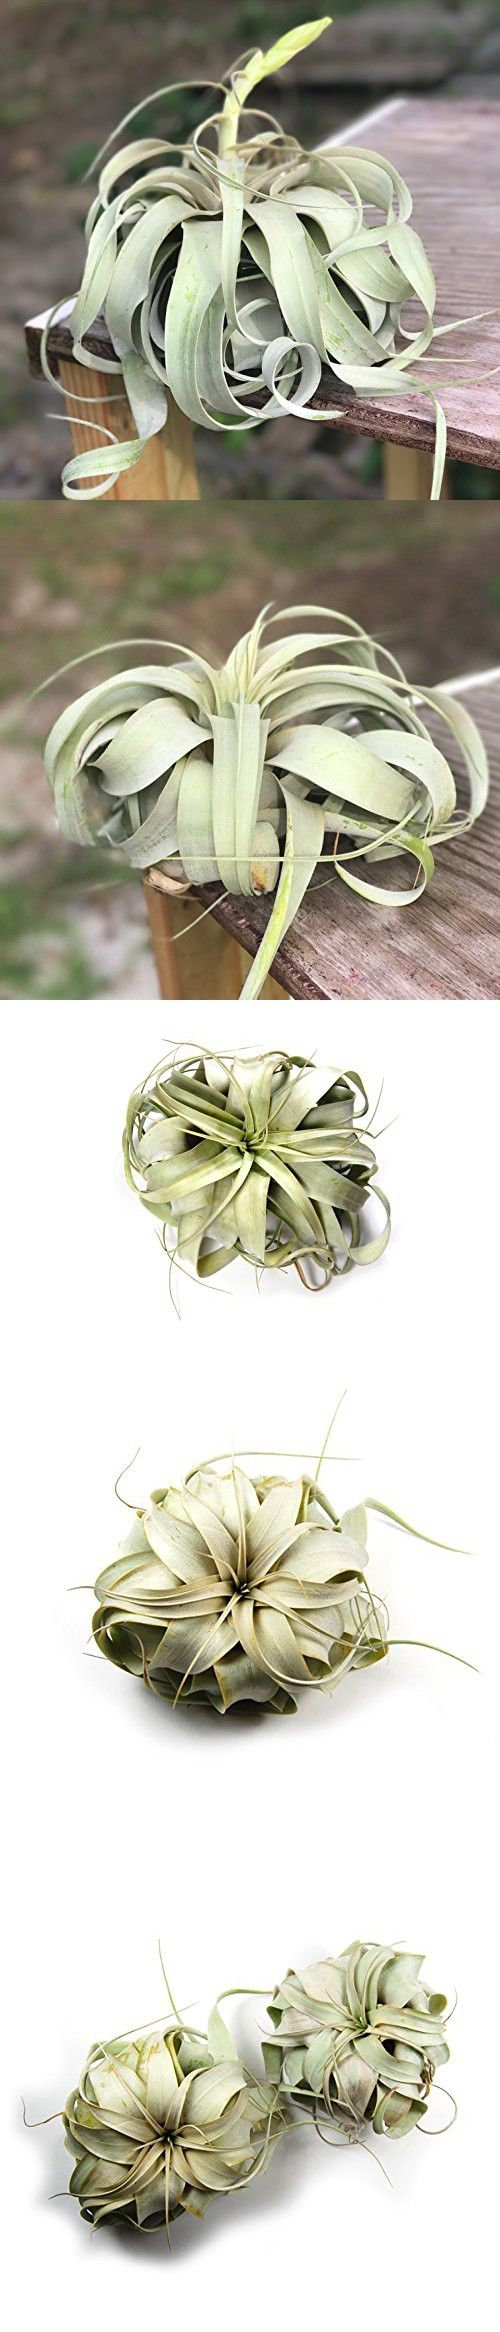 Large Xerographica Air Plants Large Air Plants 30 Day Guarantee Leaf Structure /& Appearance Varies Fast Shipping from Florida The Queen of Air Plants Big 5 to 7 Inch Wide air plants